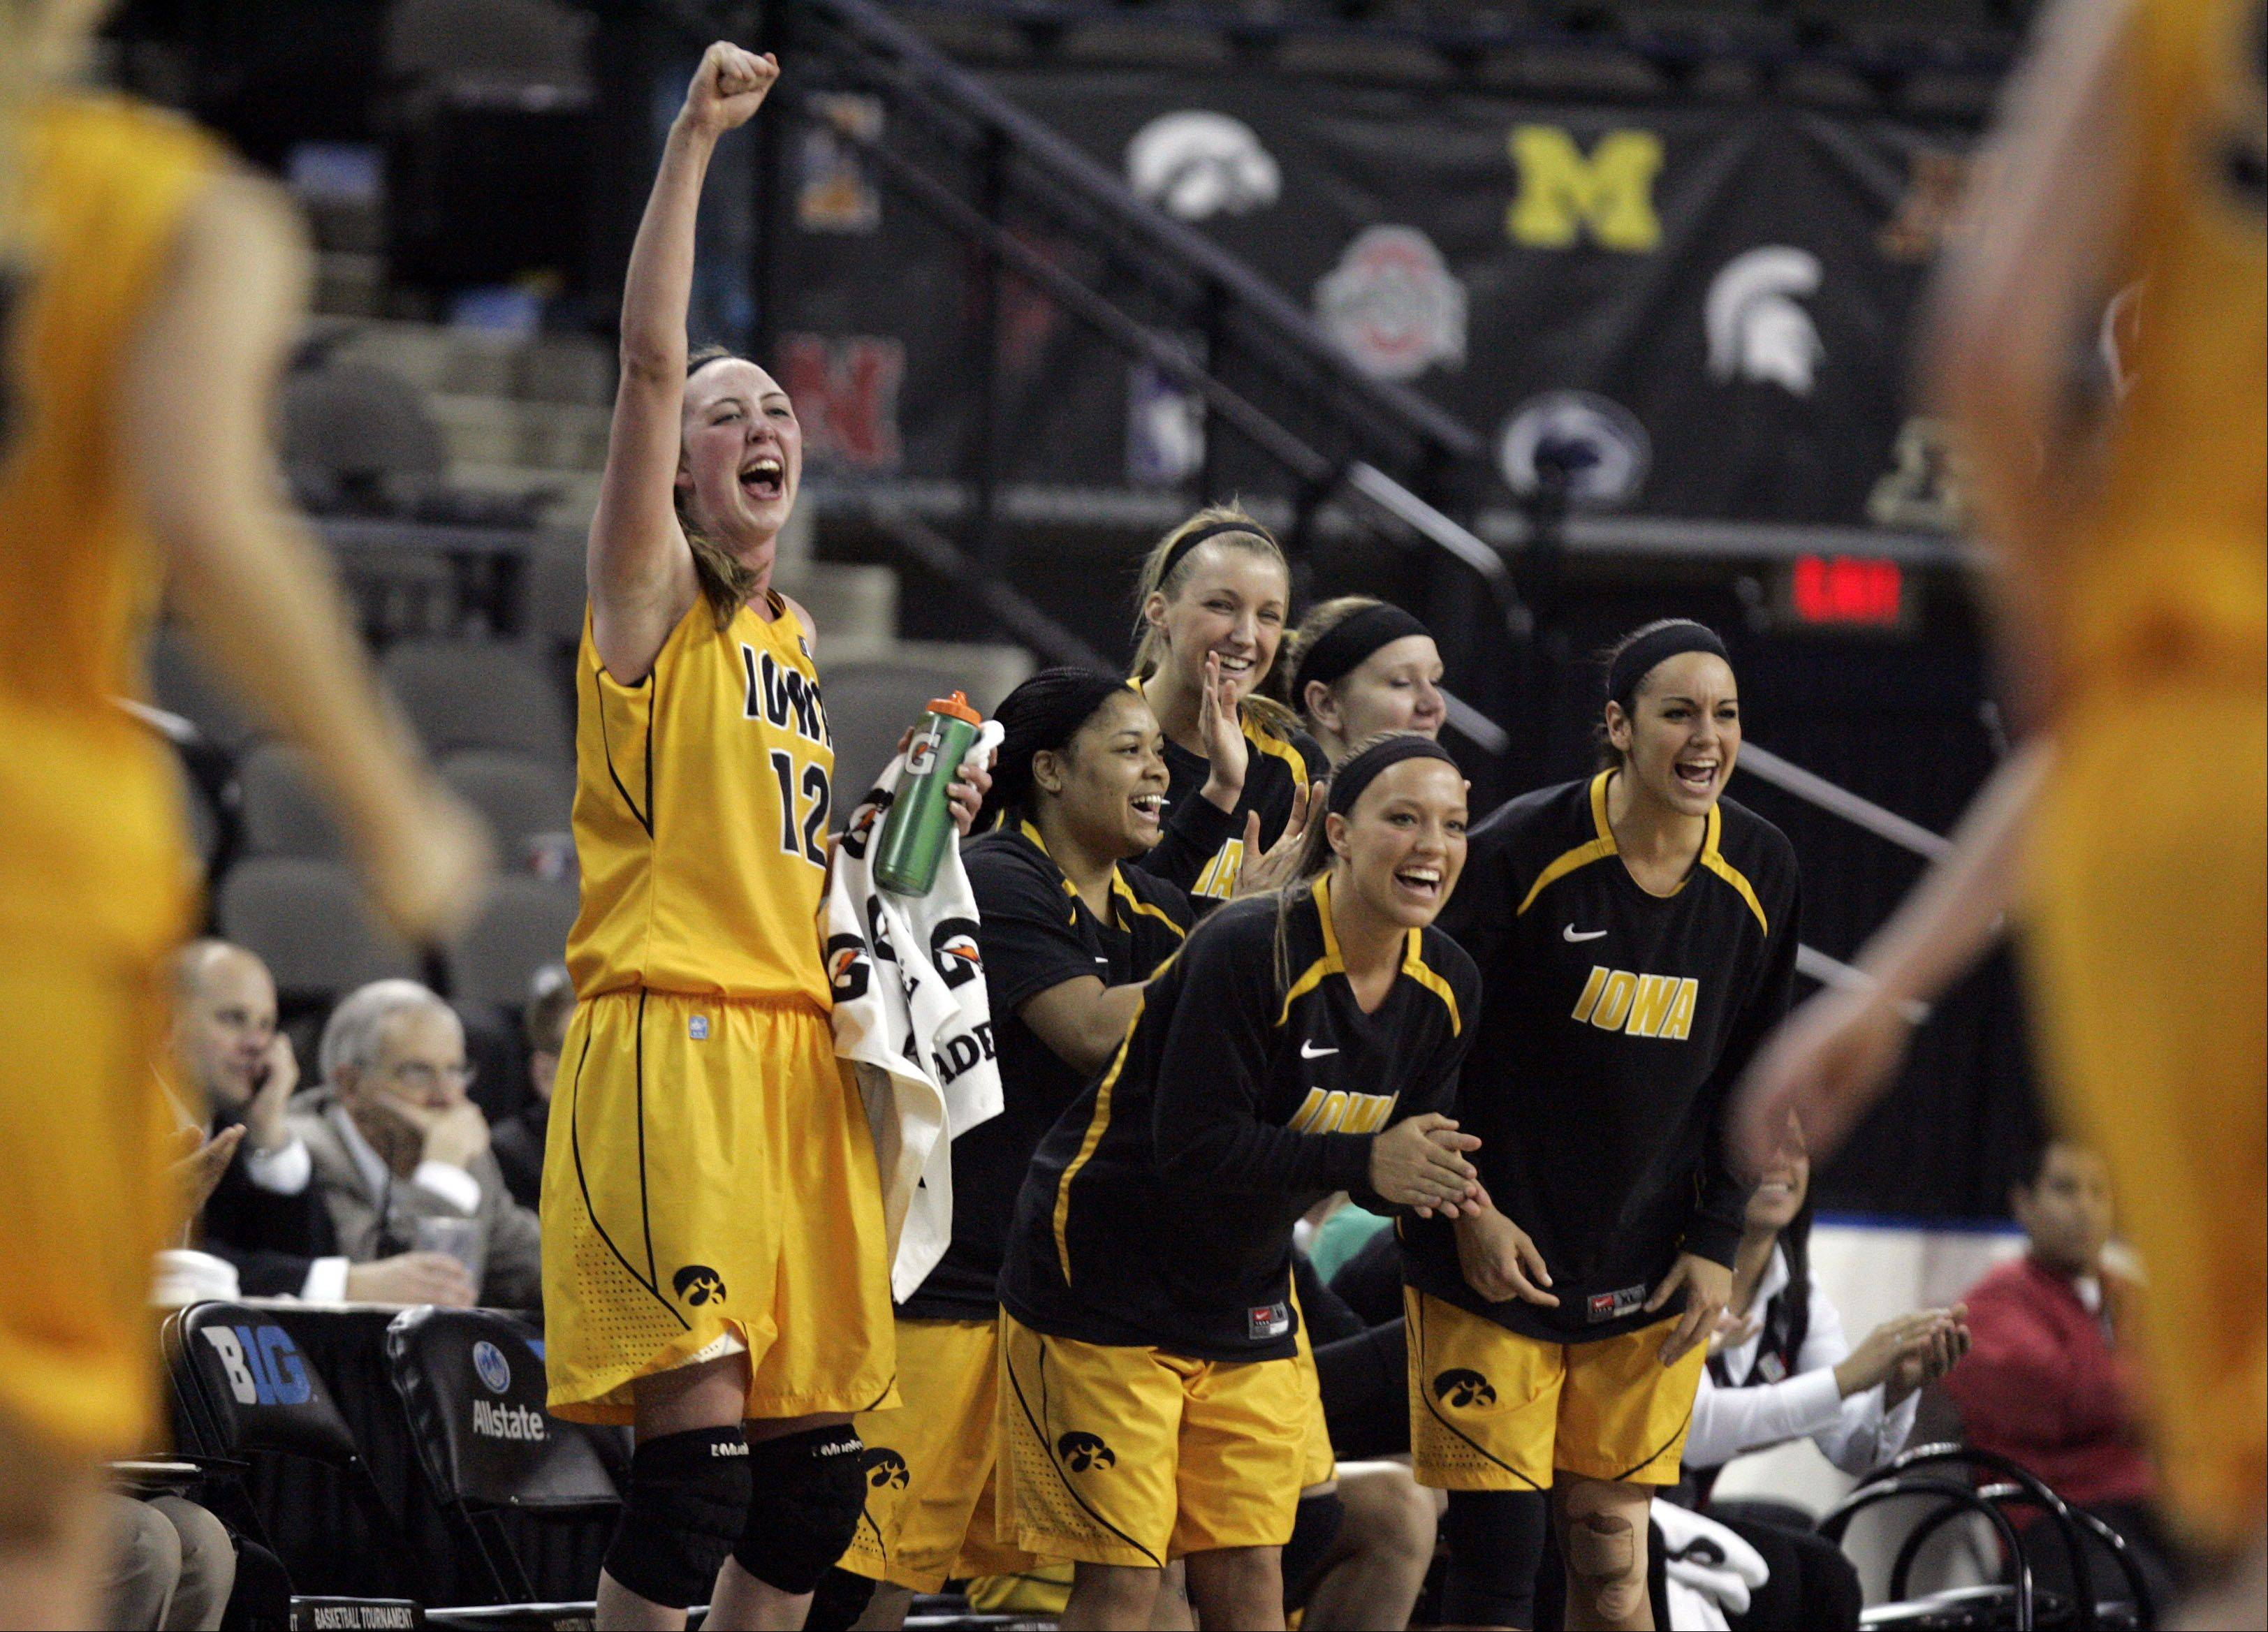 The Iowa bench reacts as the clock winds down during Northwestern vs Iowa action Thursday at the Big Ten Women's Basketball Tournament at the Sears Centre in Hoffman Estates. Iowa led the entire game.